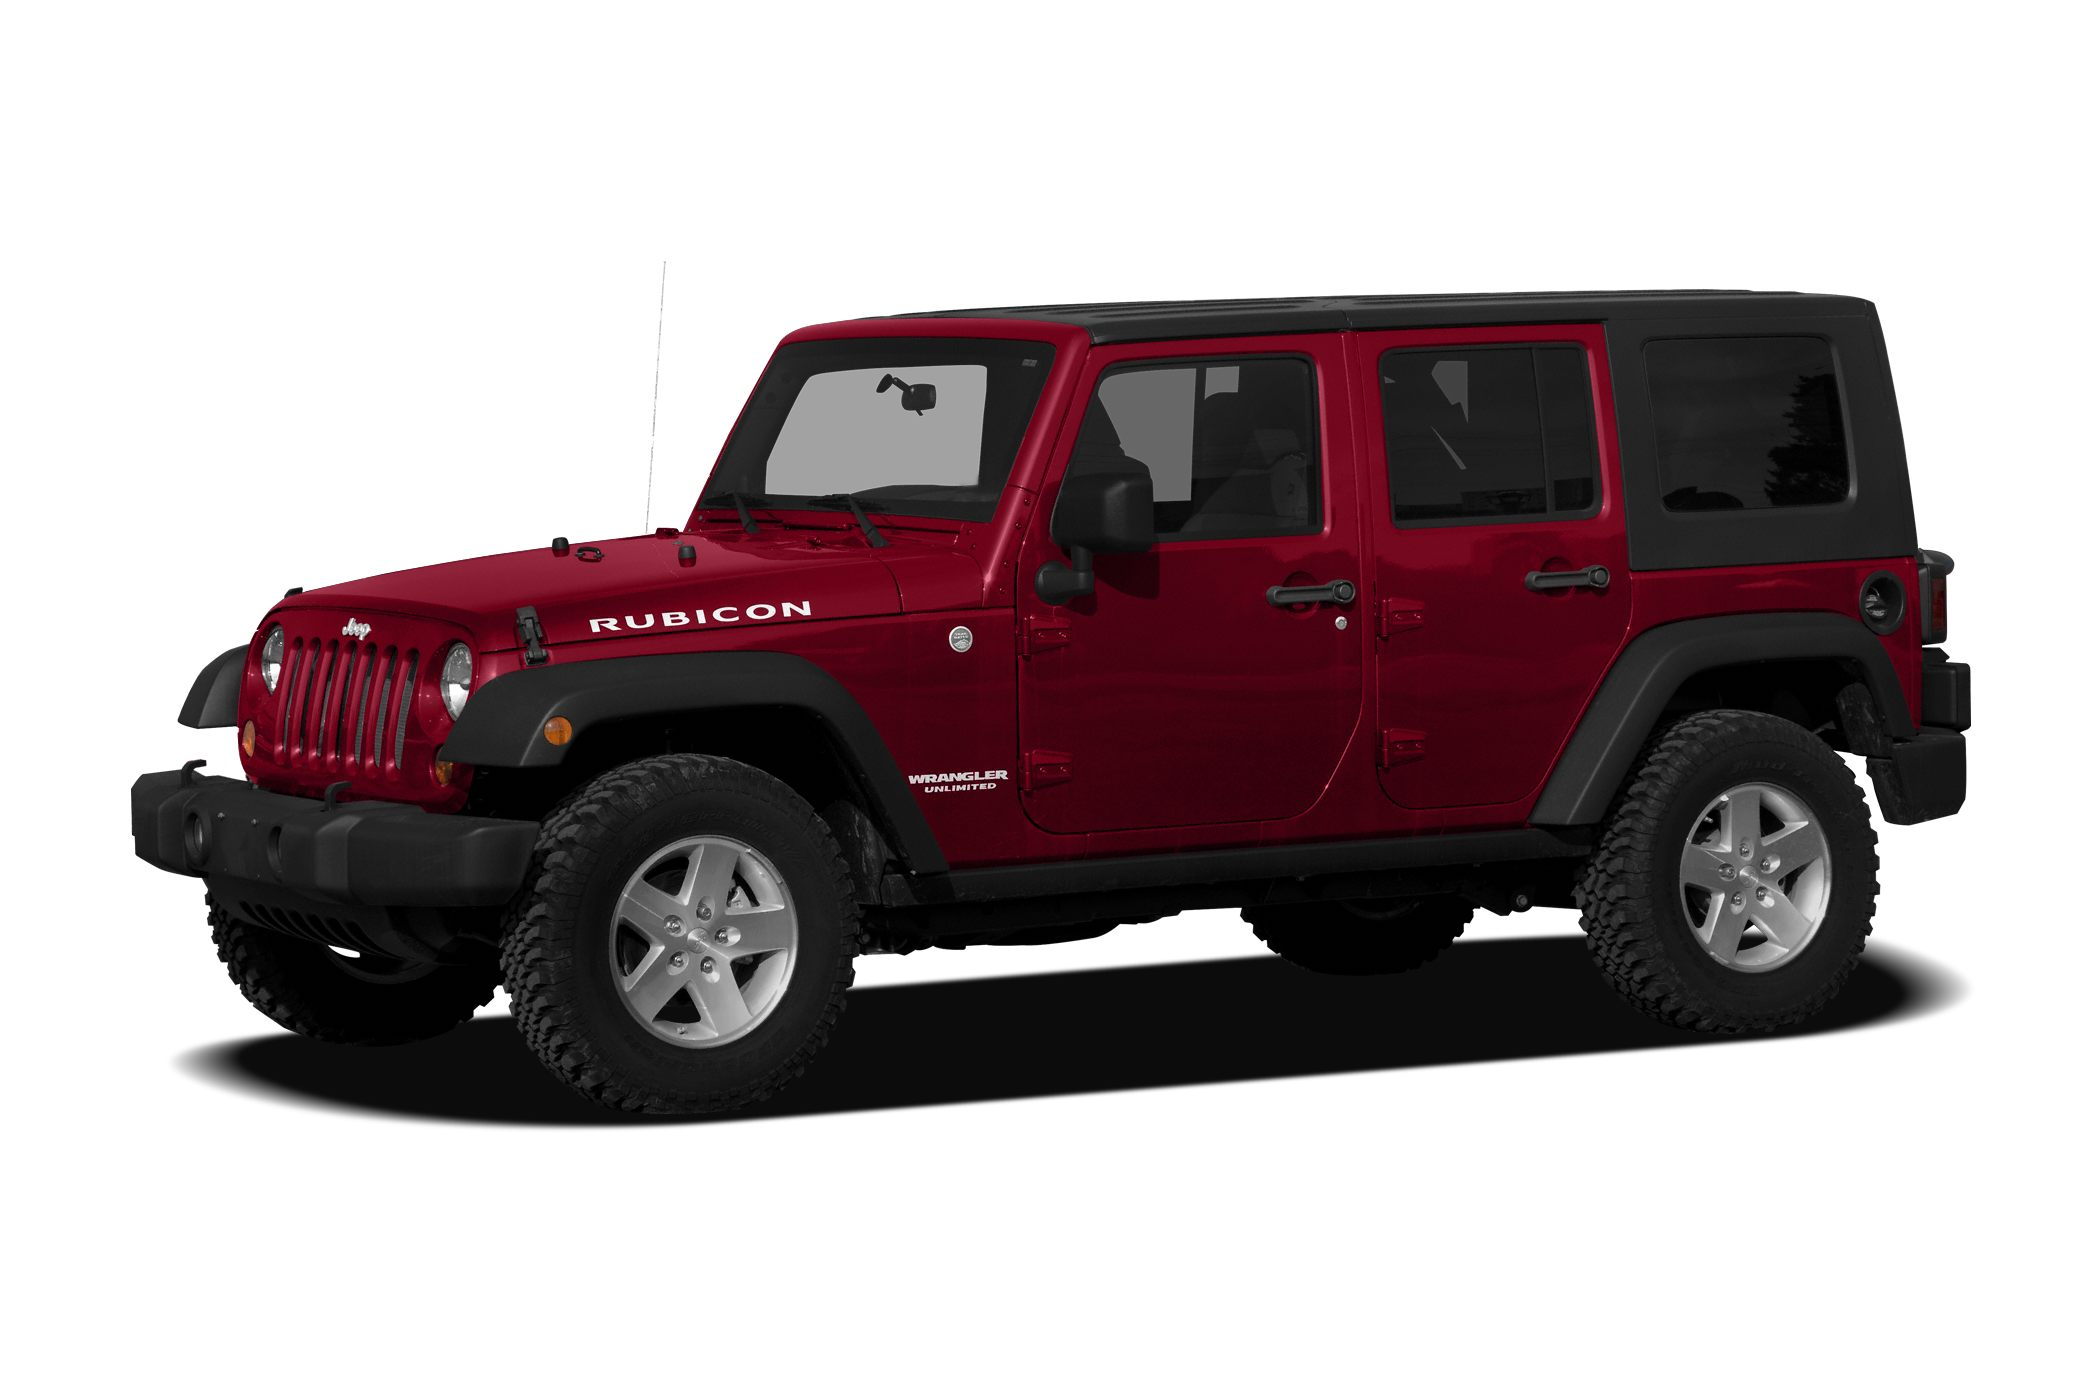 2009 Jeep Wrangler Unlimited Sahara SUV for sale in Waxahachie for $18,995 with 148,150 miles